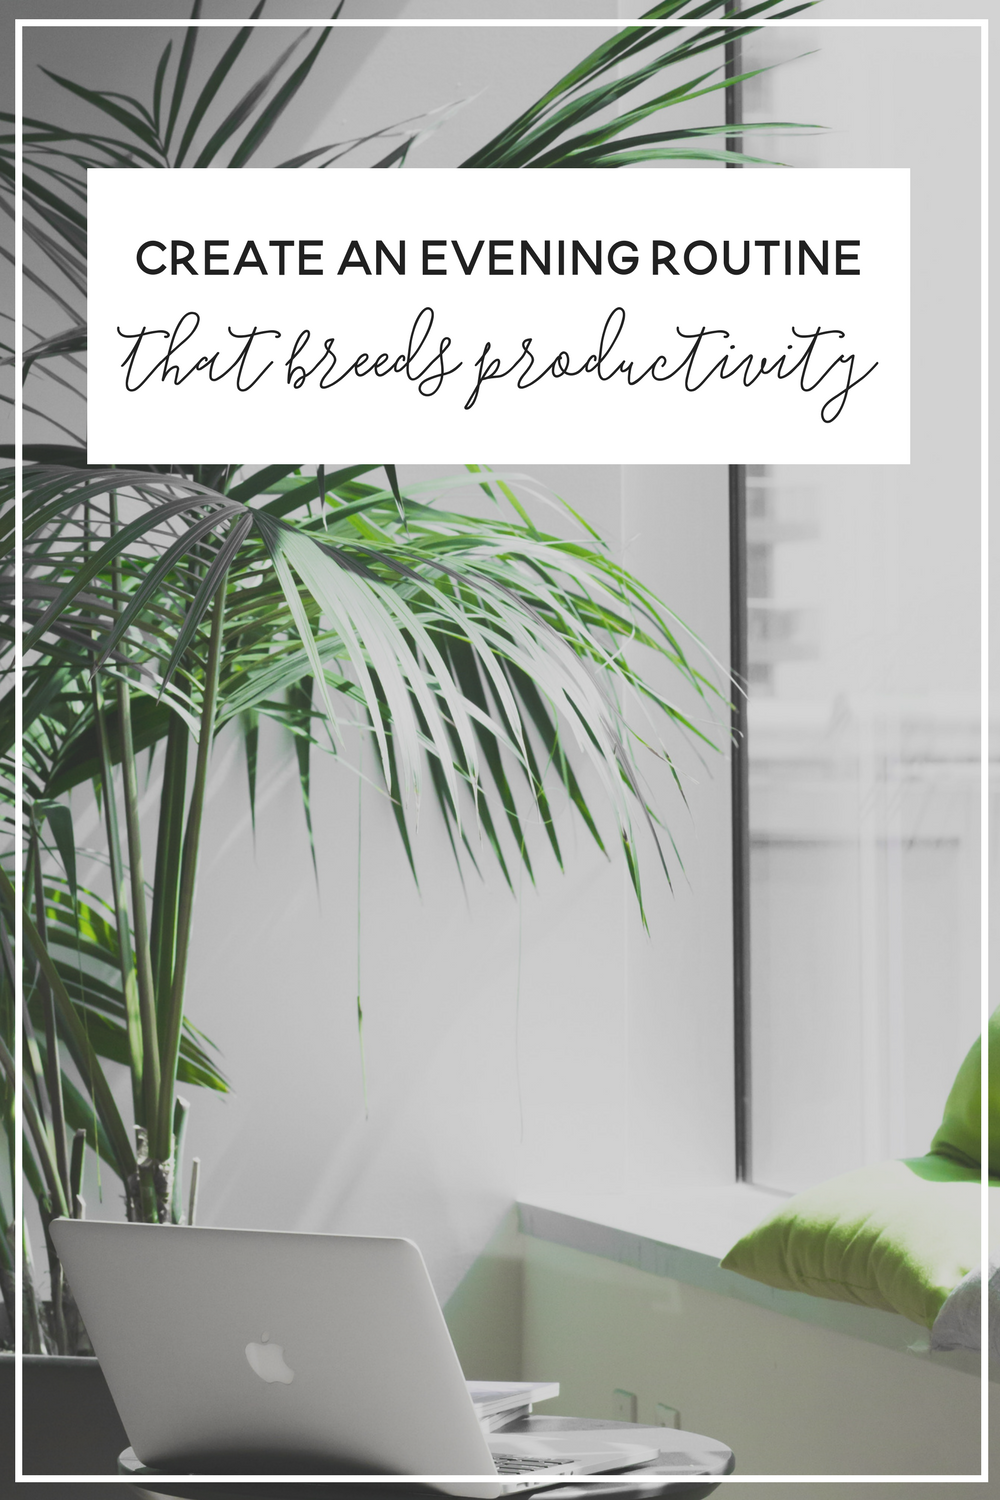 Create an evening routine that makes you super productive the next morning